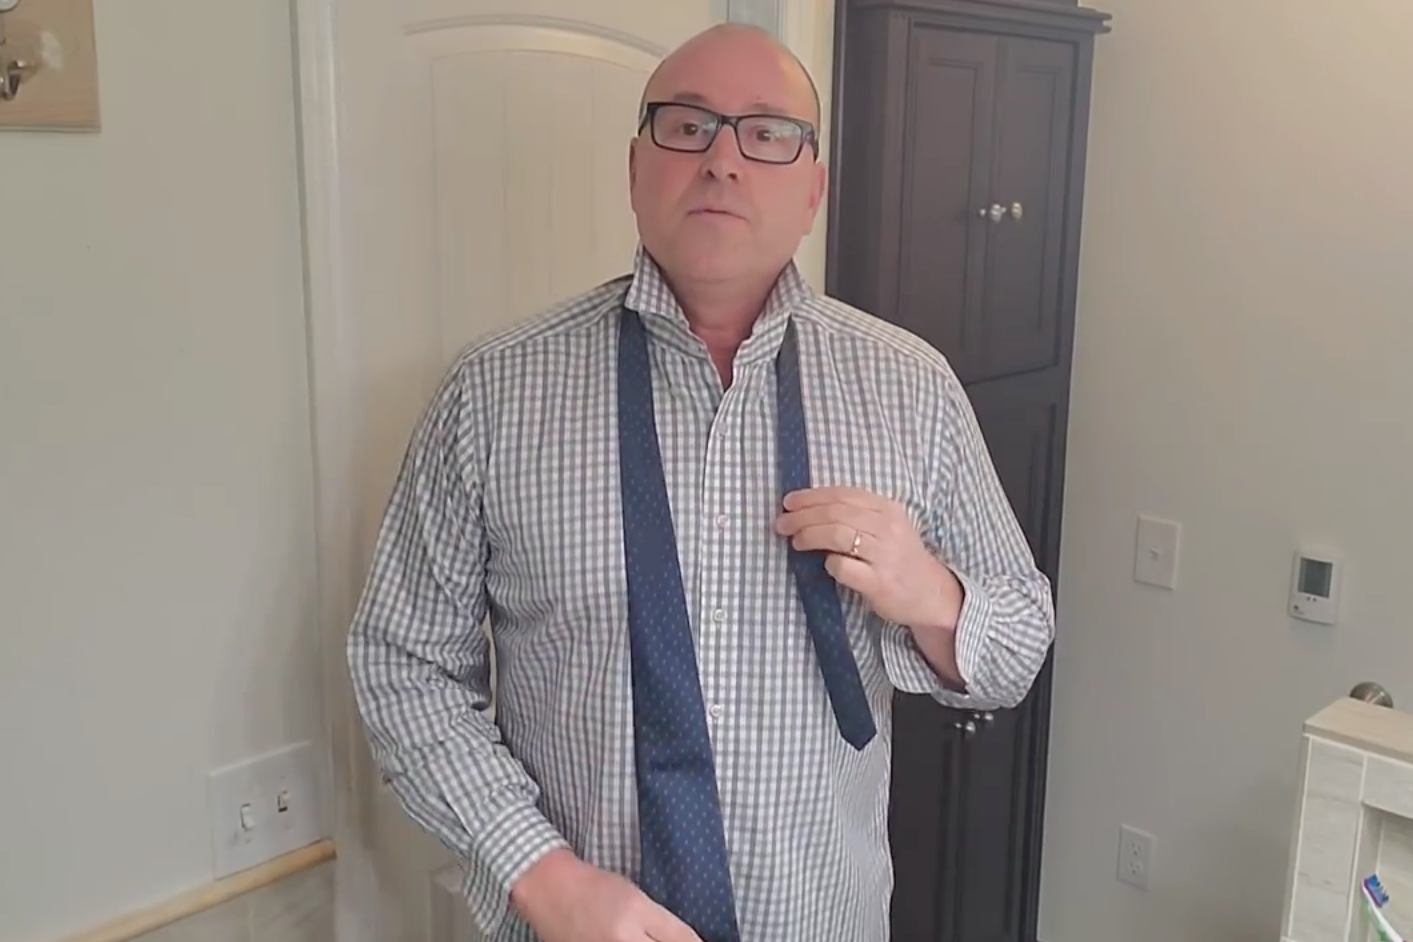 Man who grew up with no father creates 'Dad, how do I?' YouTube channel to teach others